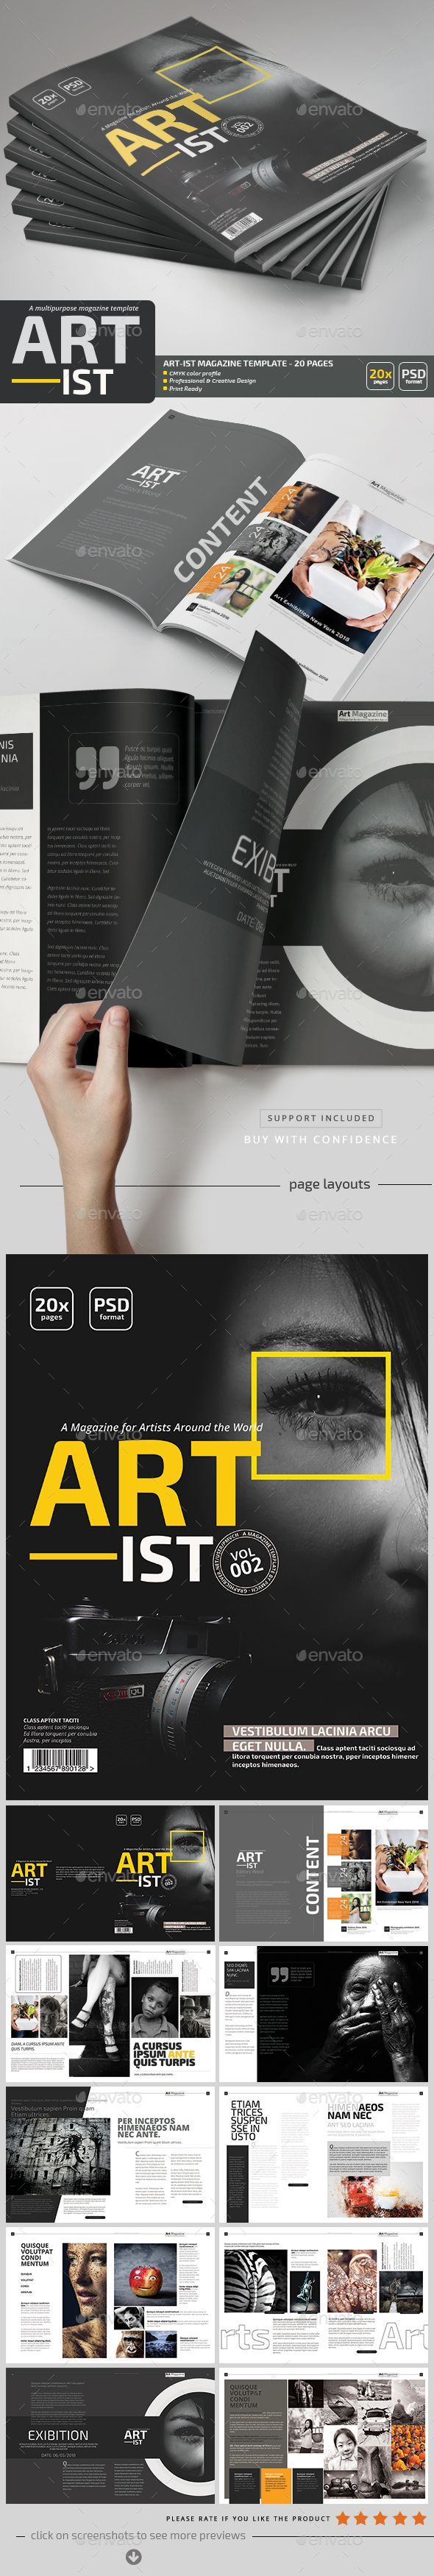 Art-ist Magazine Template V.2 by pmvch Art-Ist Photoshop Magazine Template Vol.2can be used as a magazine, portfolio or a brochure.Fully layered PSD files and very easy